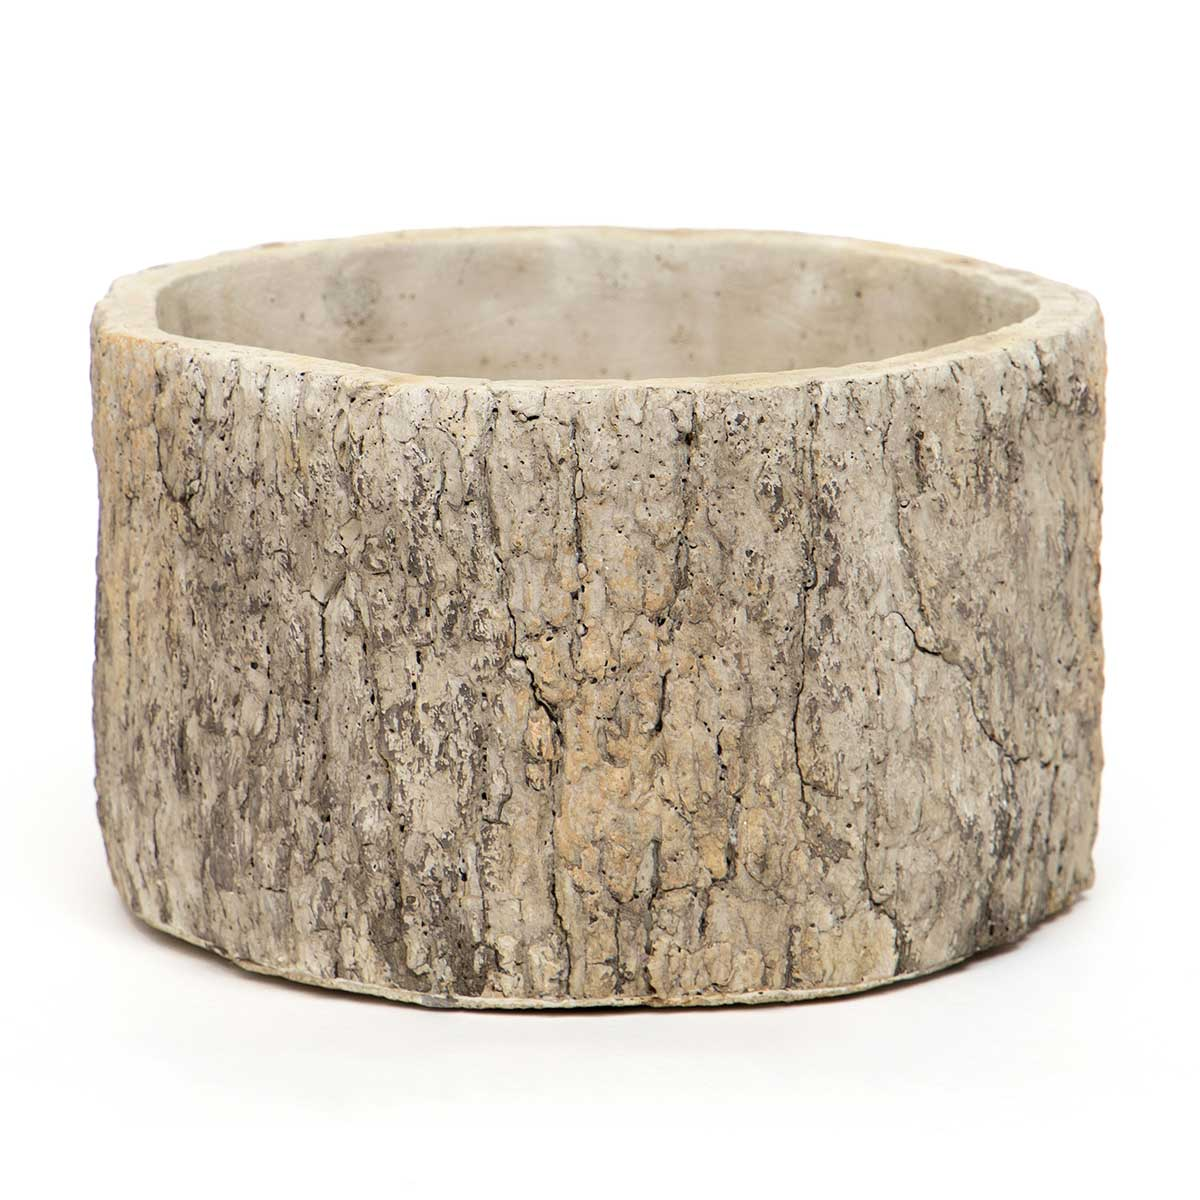 ROUND CONCRETE LOG POT